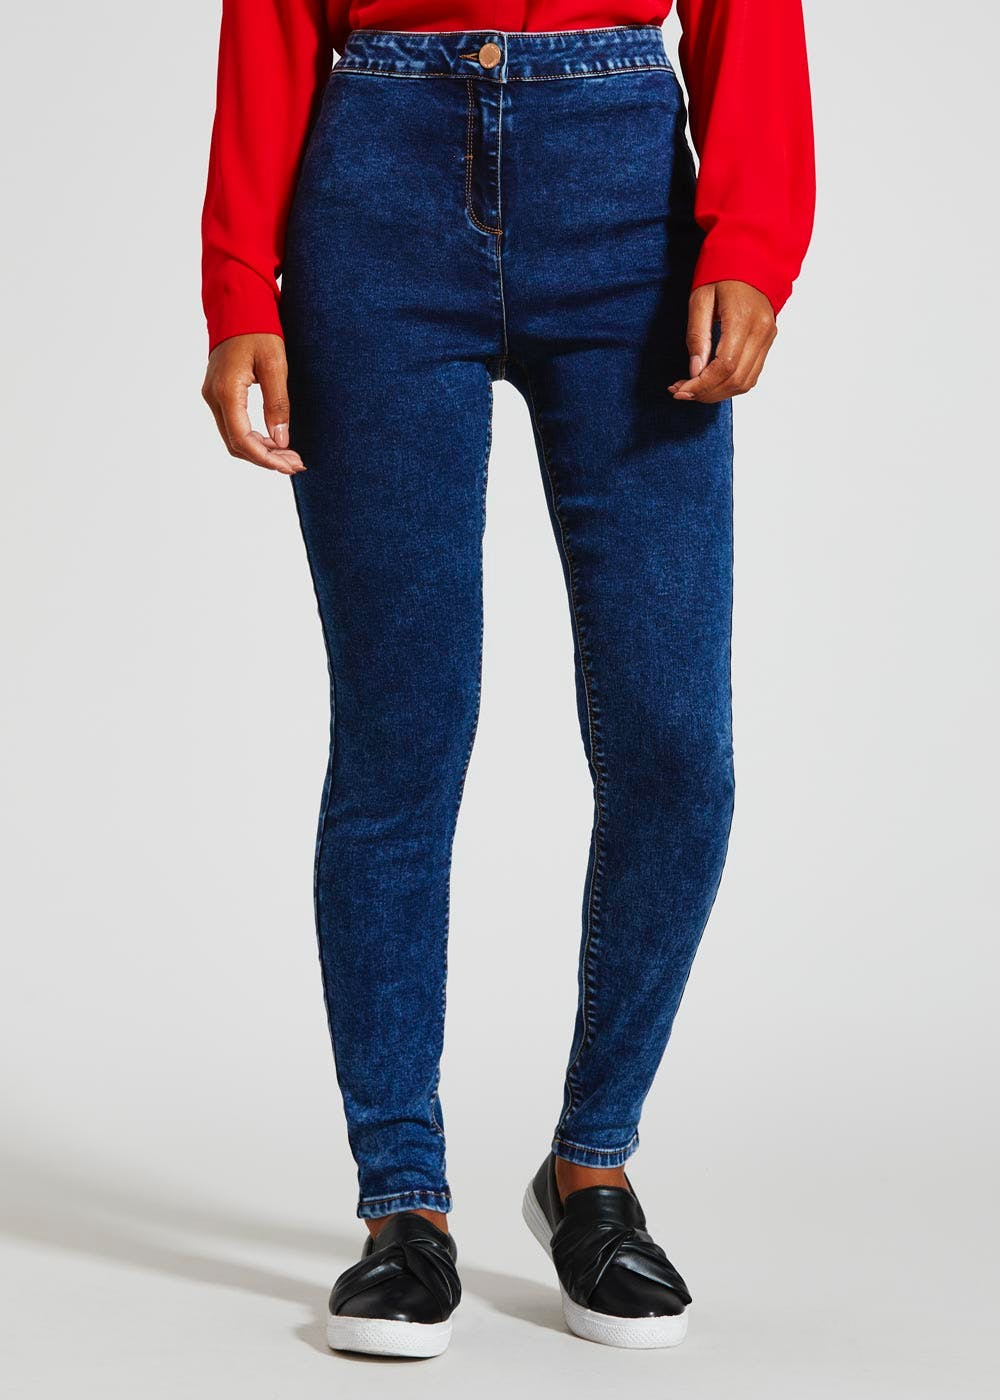 new images of factory price a few days away Jessie High Waisted Jeans – Darkwash – Matalan